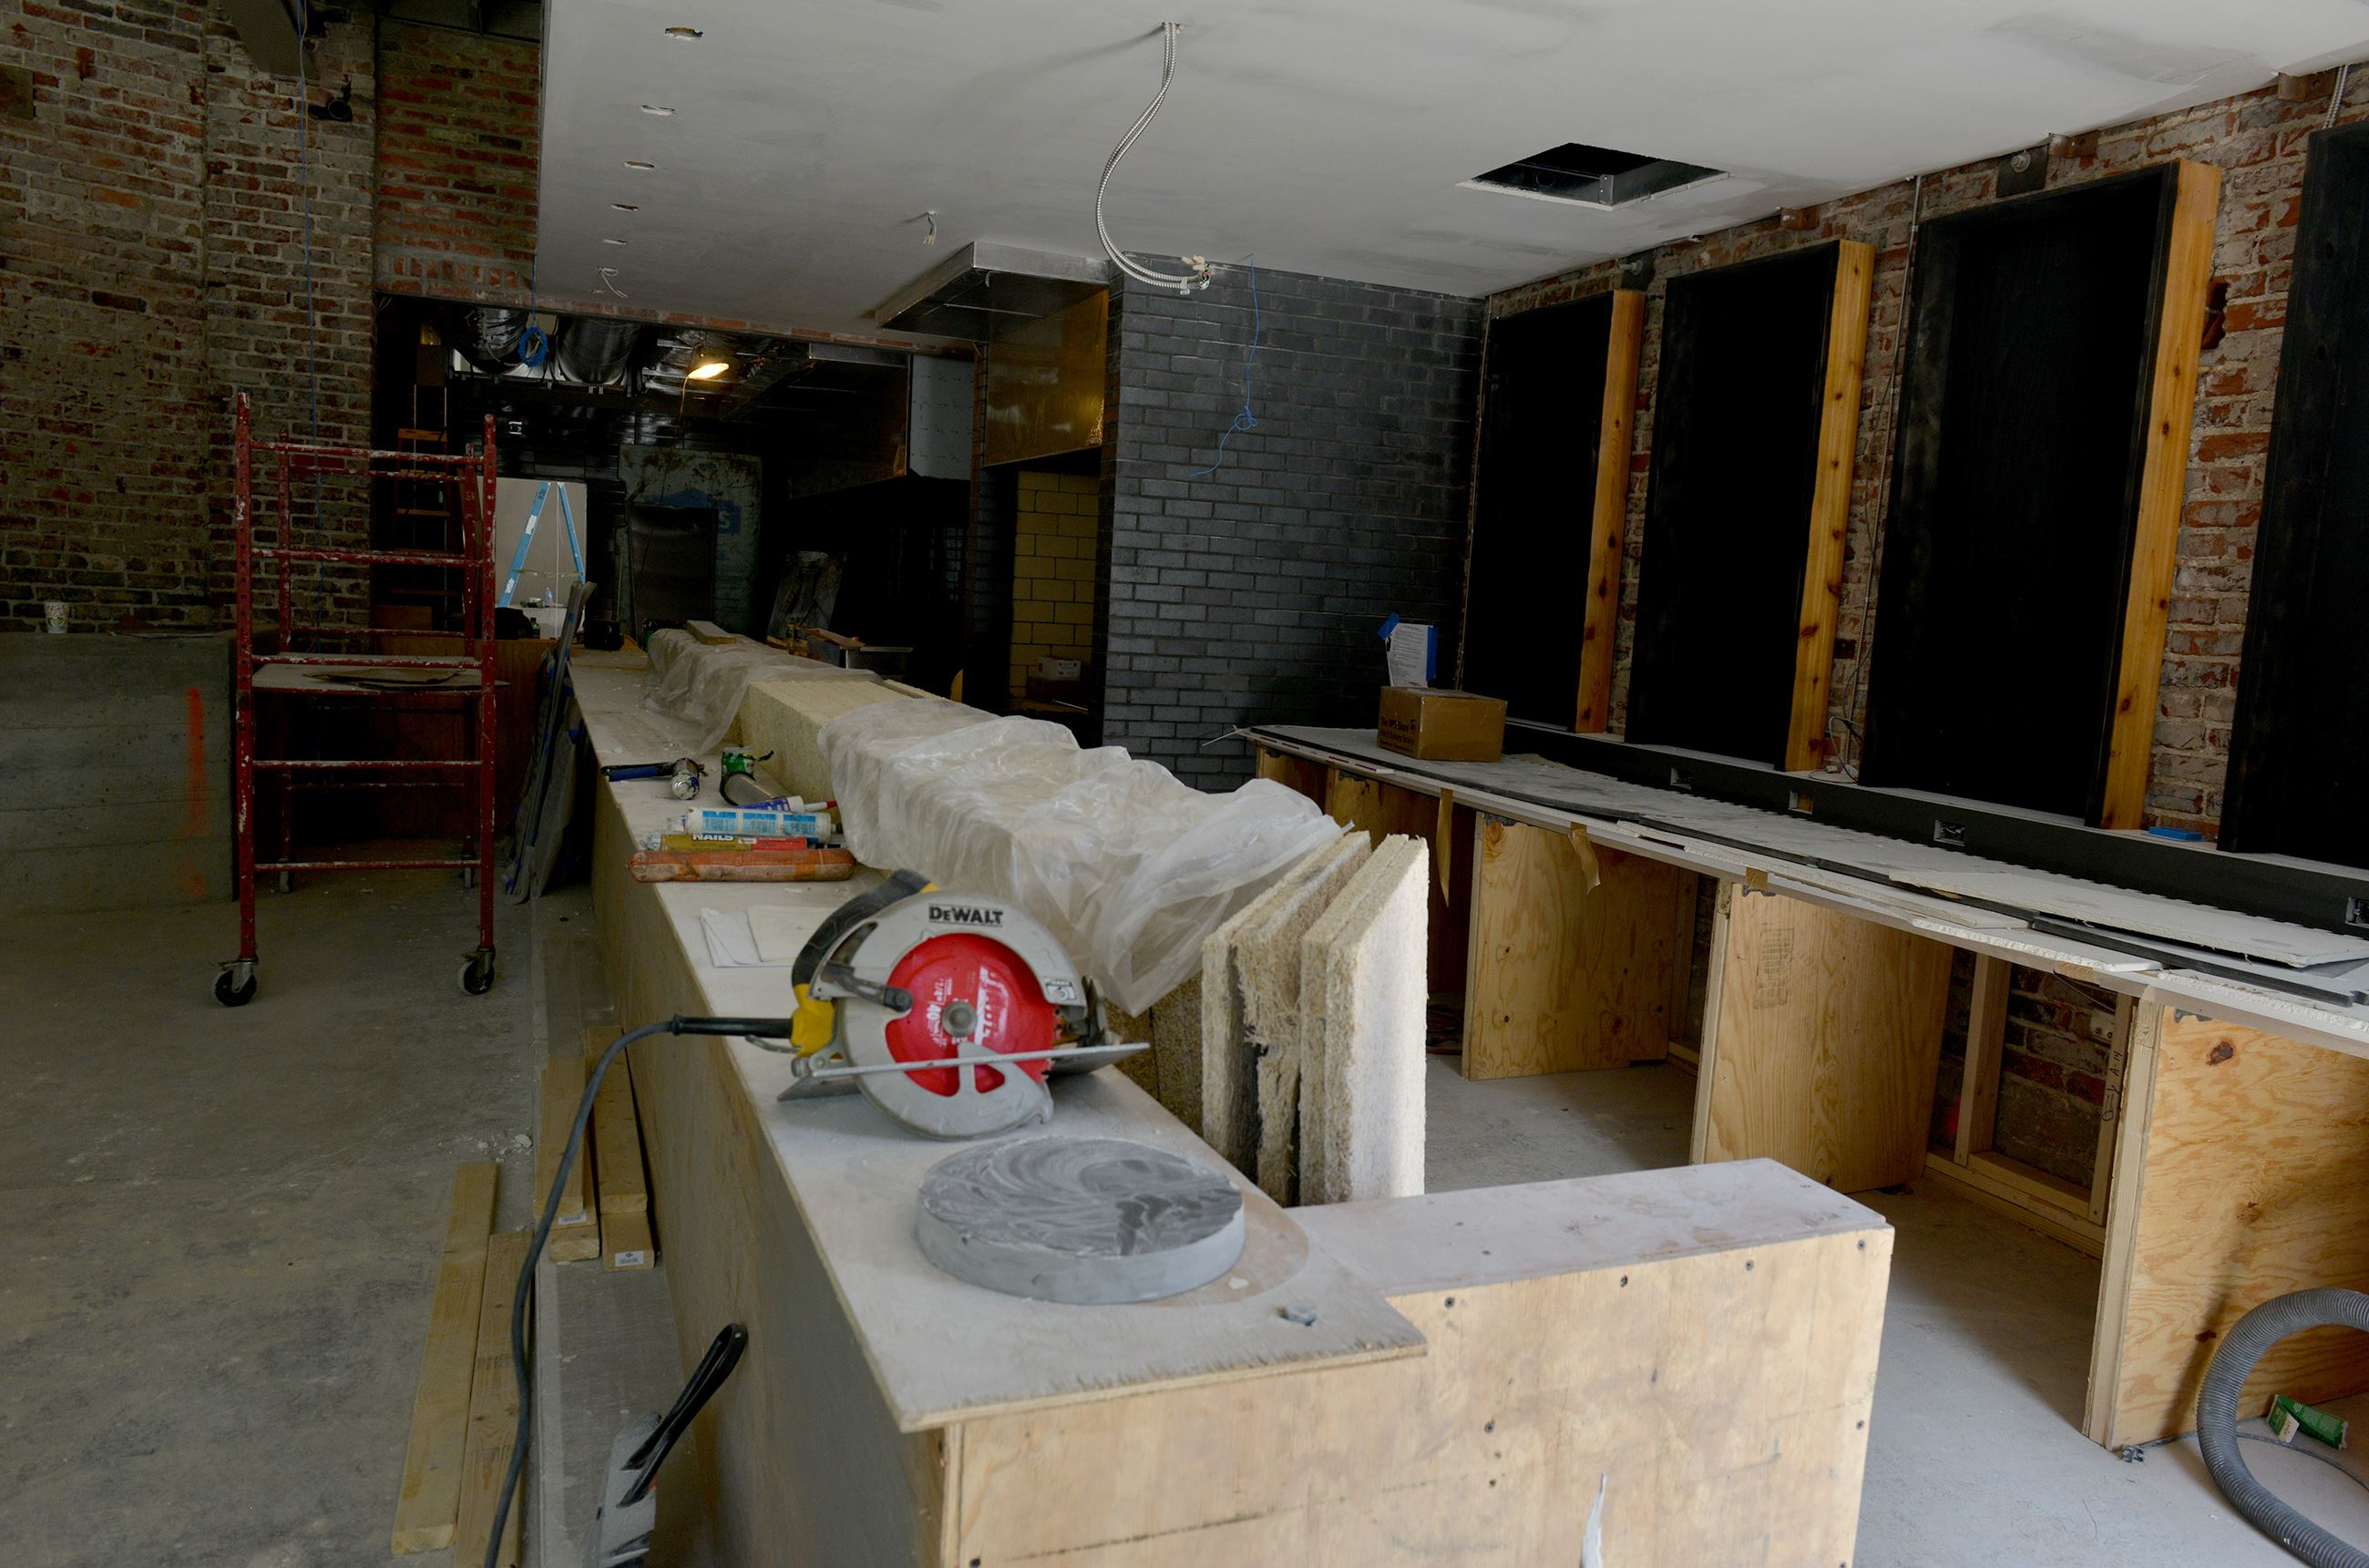 20170609ppSuperiorMotors6LOC-5 The bar, just off the main dining area, is to be covered in black steel.